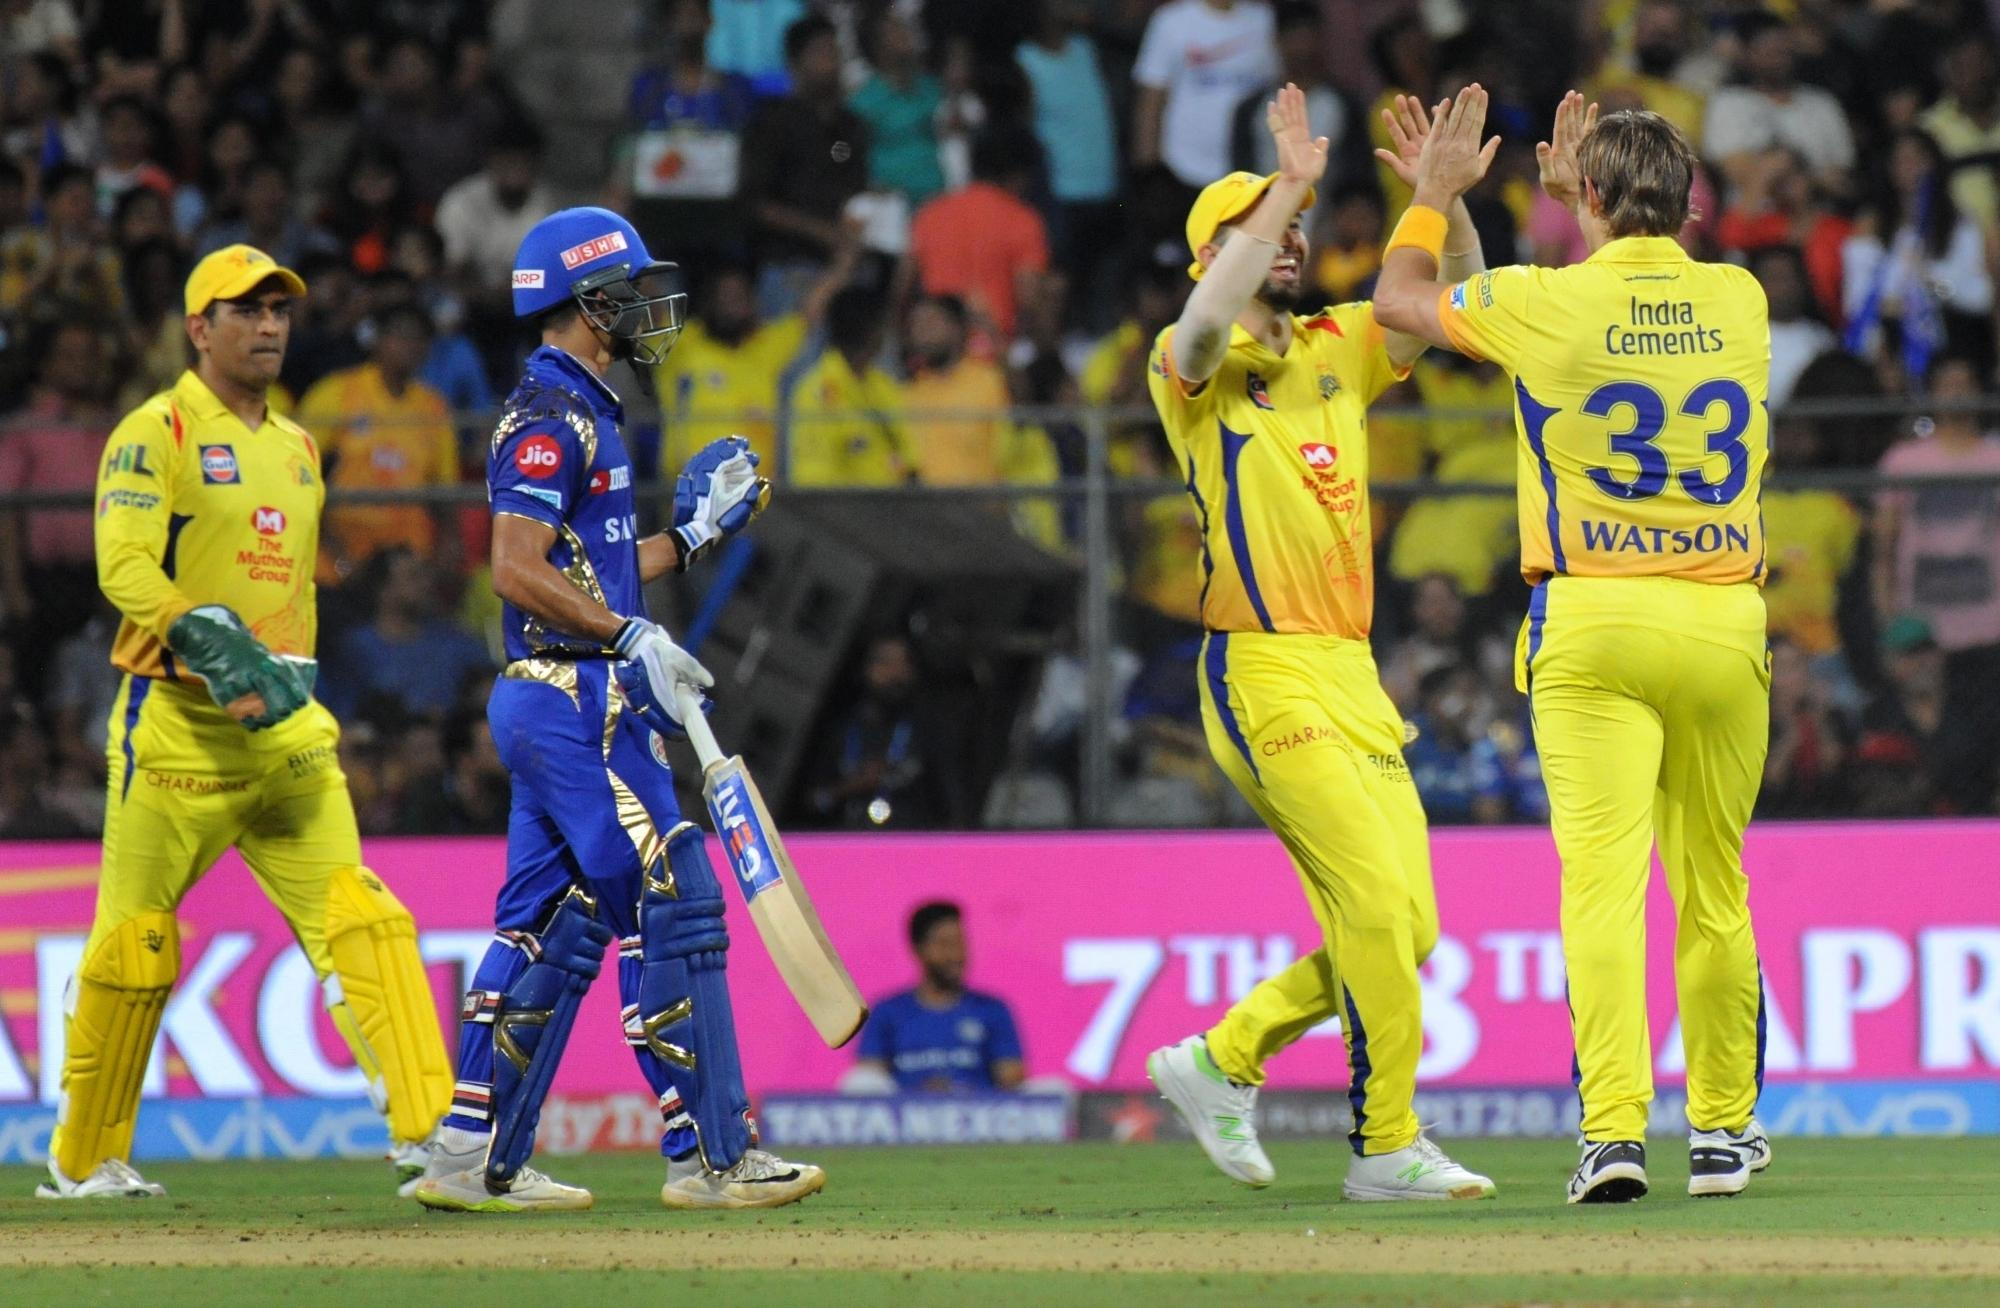 IPL 2020 currently remains suspended until further notice | IANS